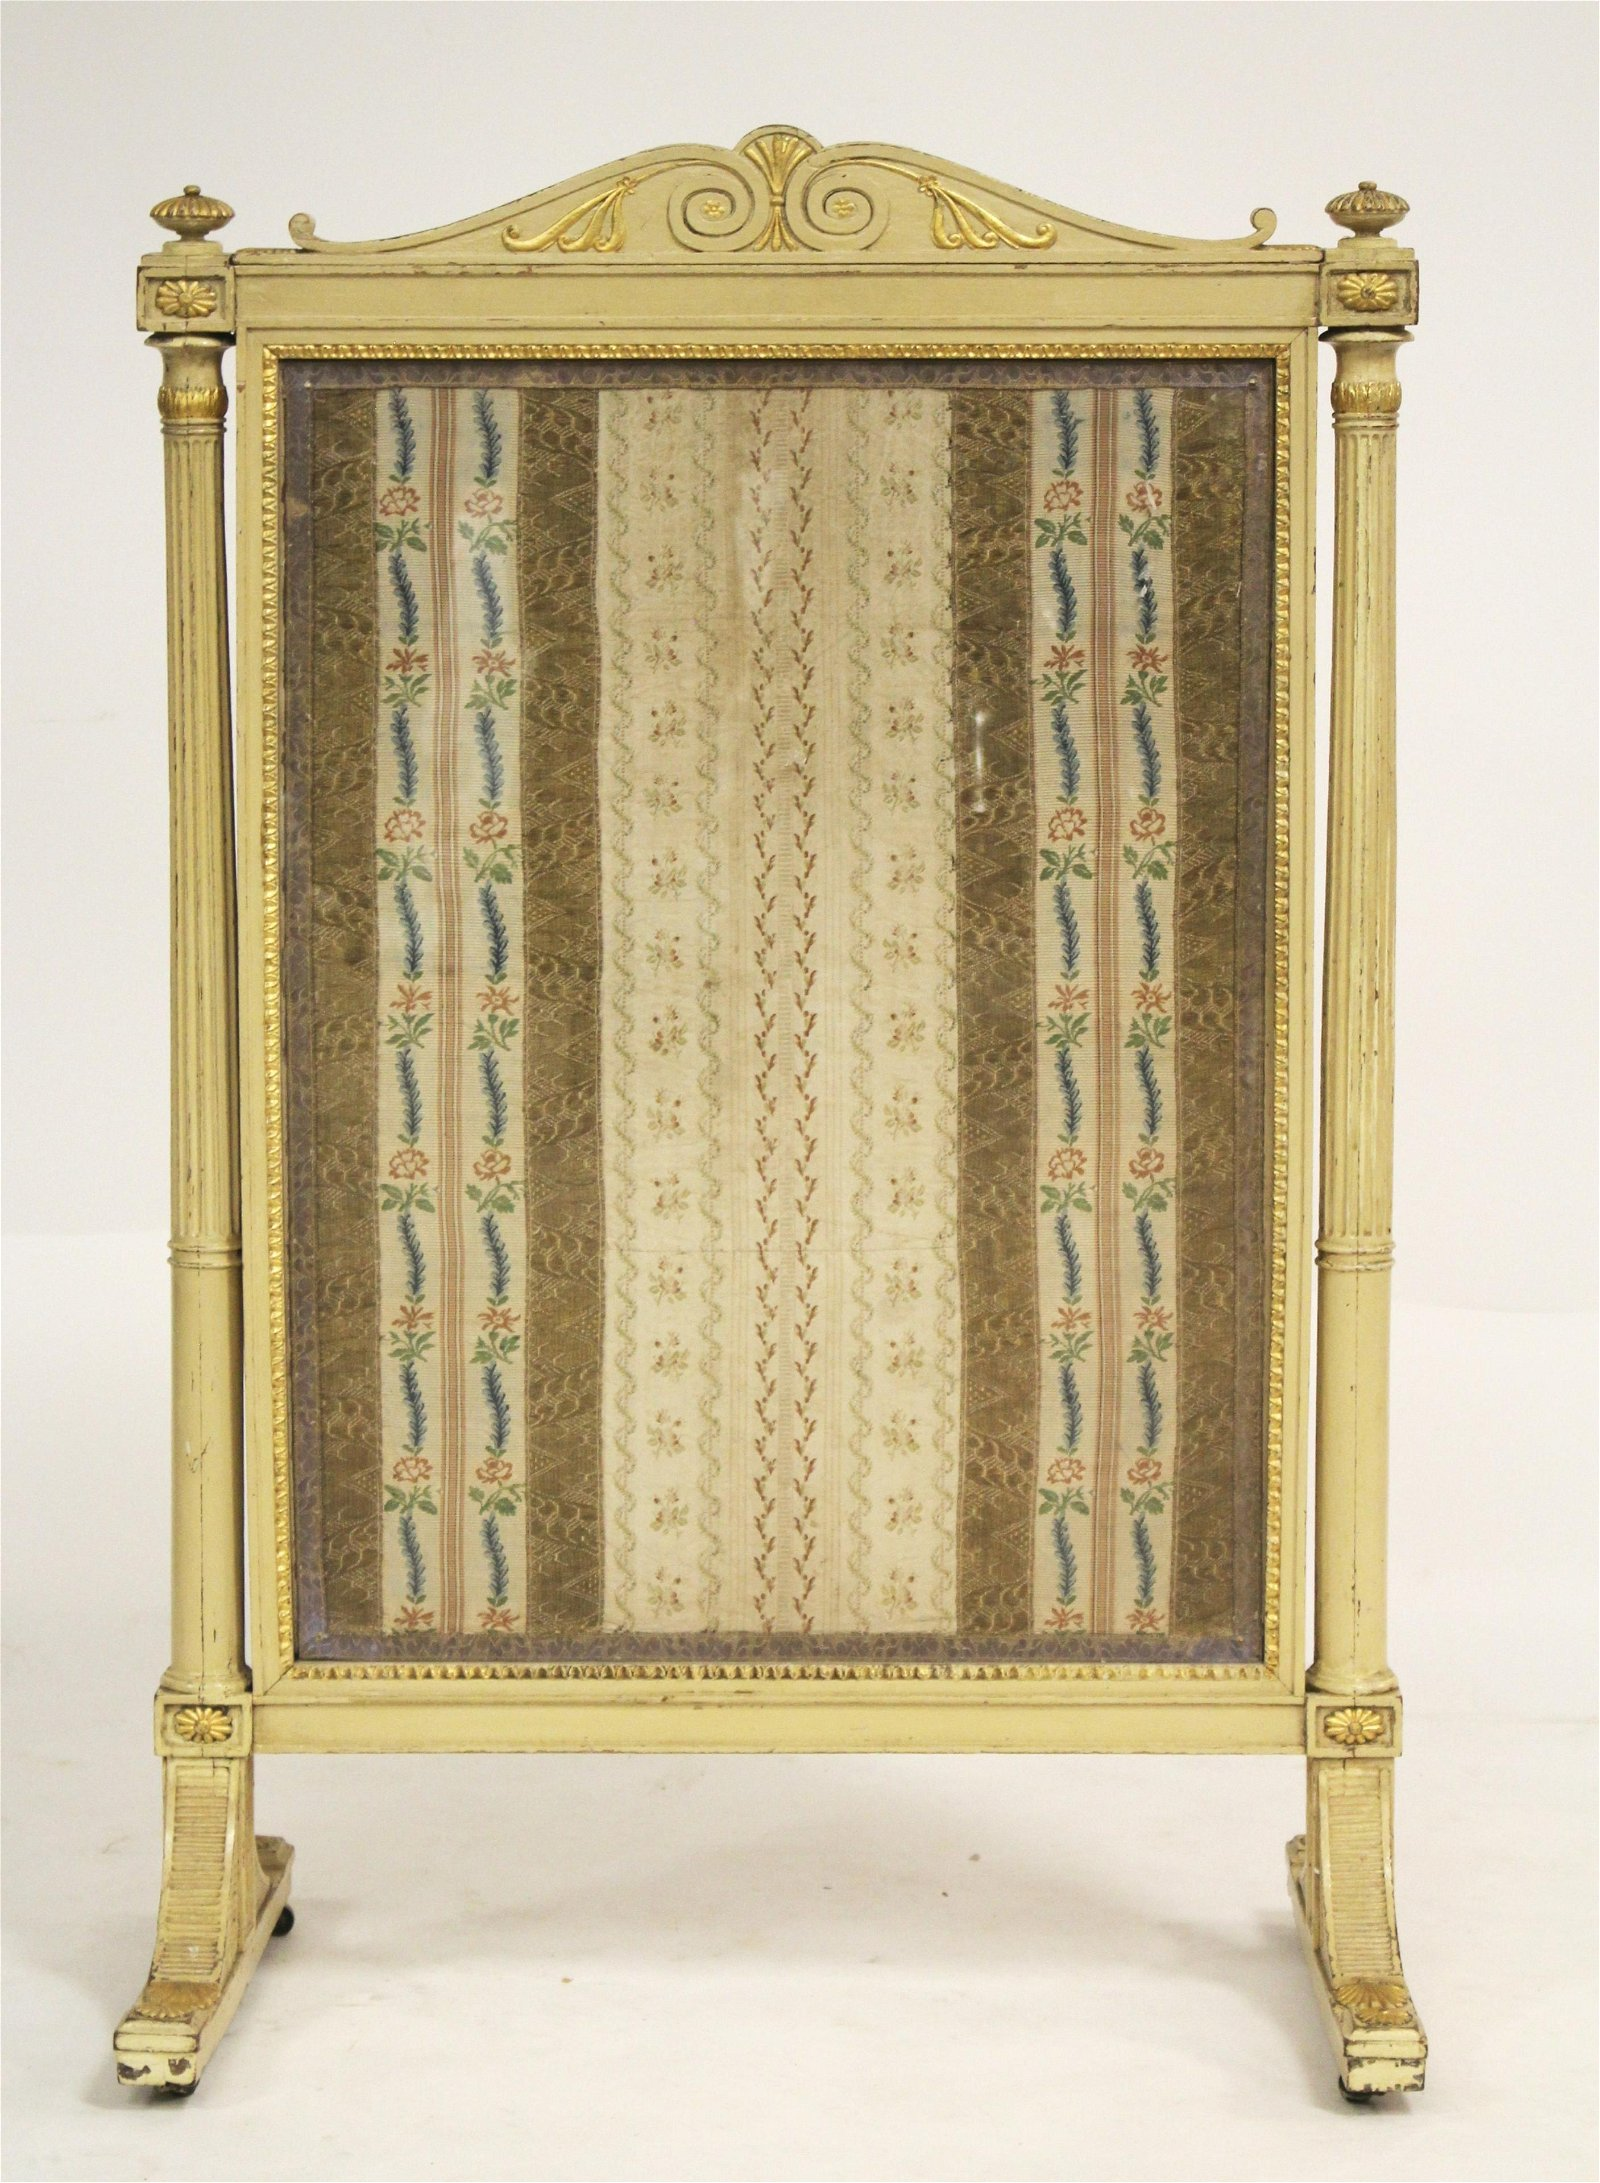 French Carved Painted & Gilded Fire Screen, 19th C